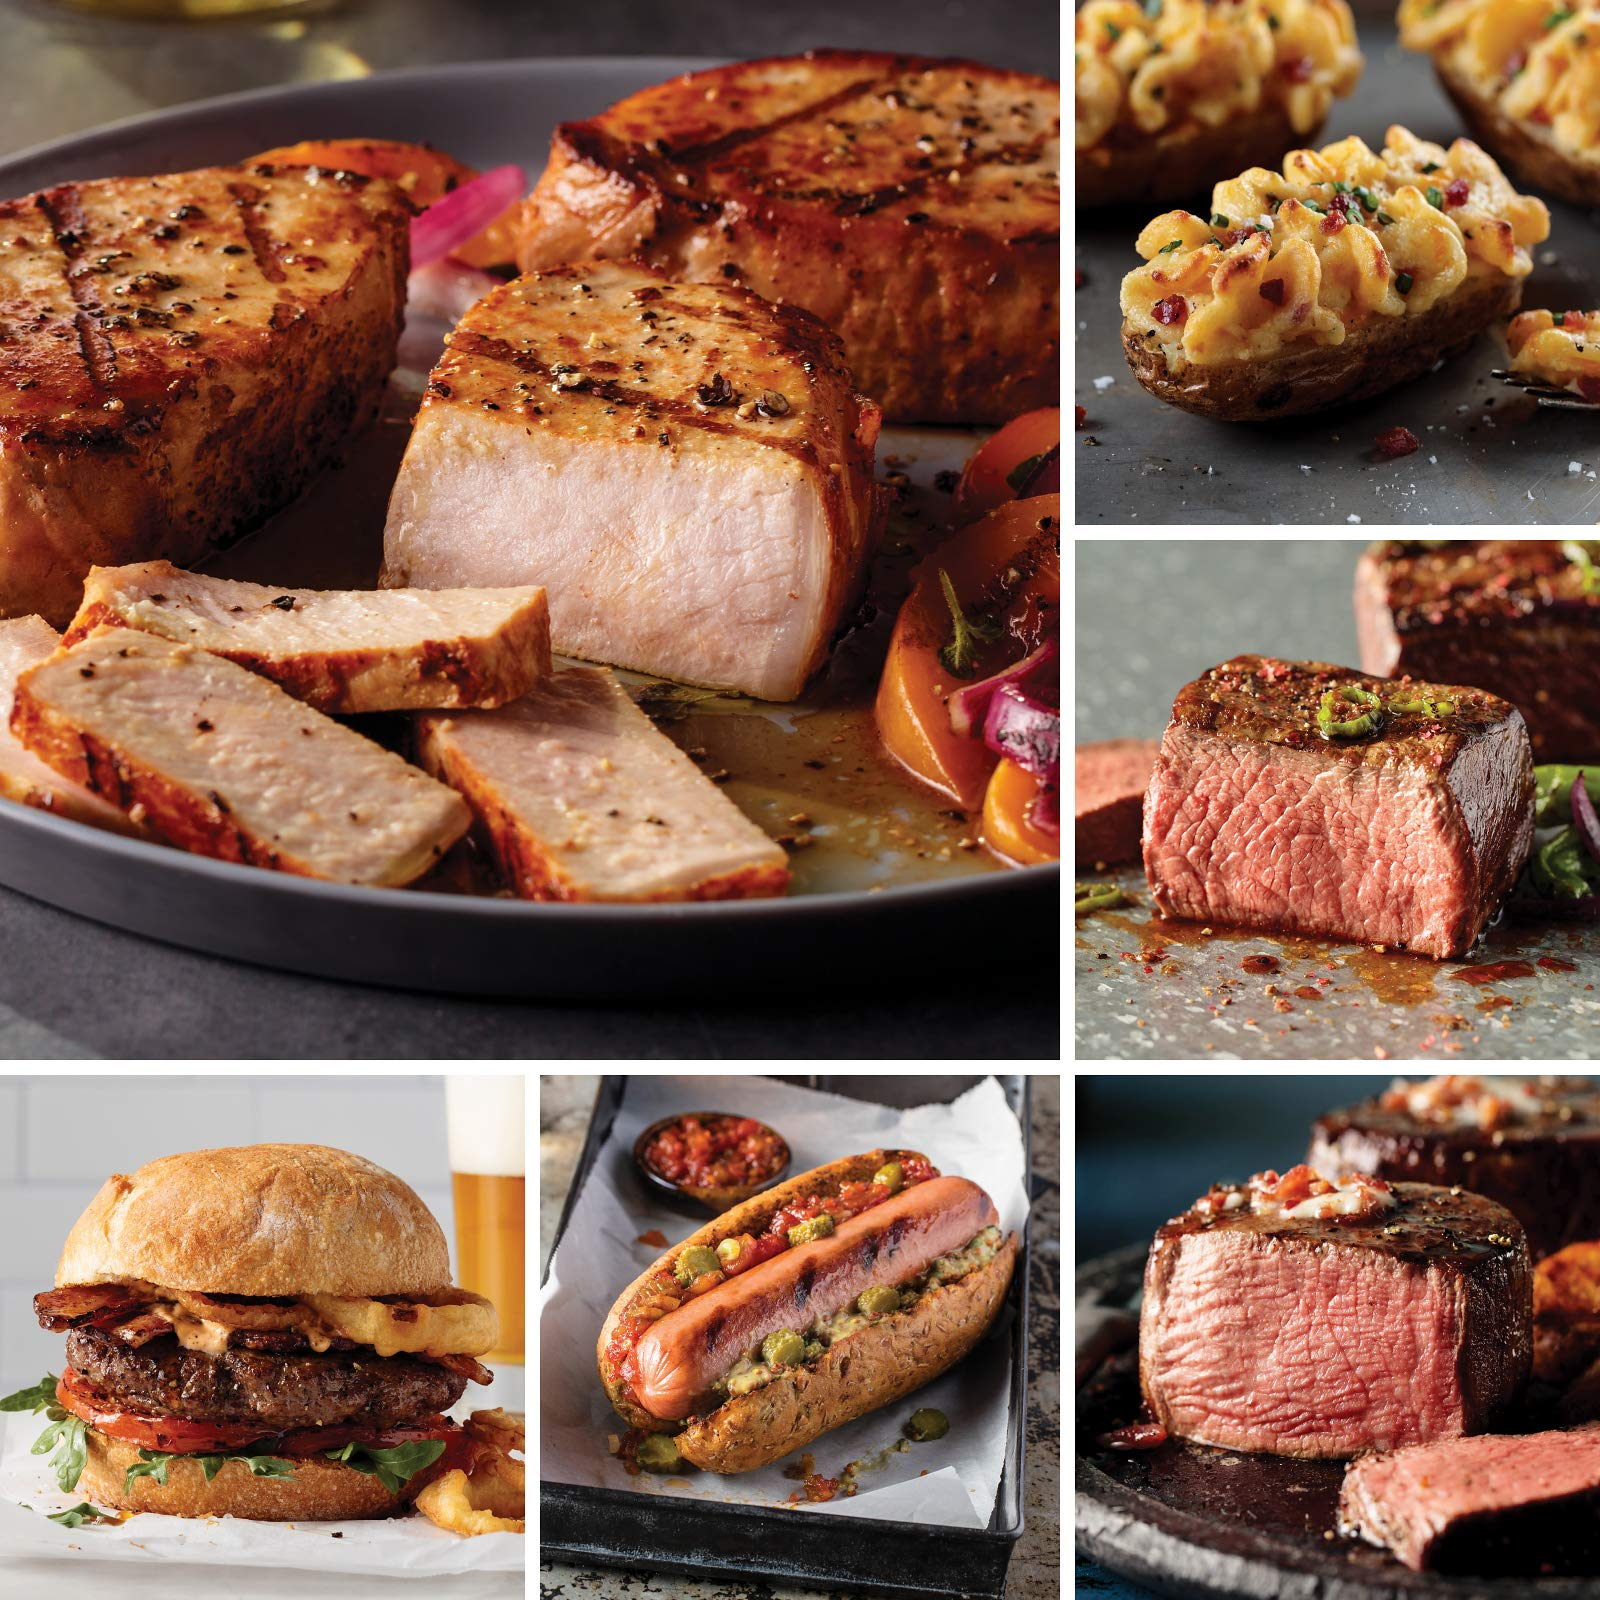 Omaha Steaks Premier Selection (20-Piece with Filet Mignons, Boneless New York Strips, Top Sirloins, Boneless Pork Chops, Steak Burgers, Jumbo Franks, and Stuffed Baked Potatoes)